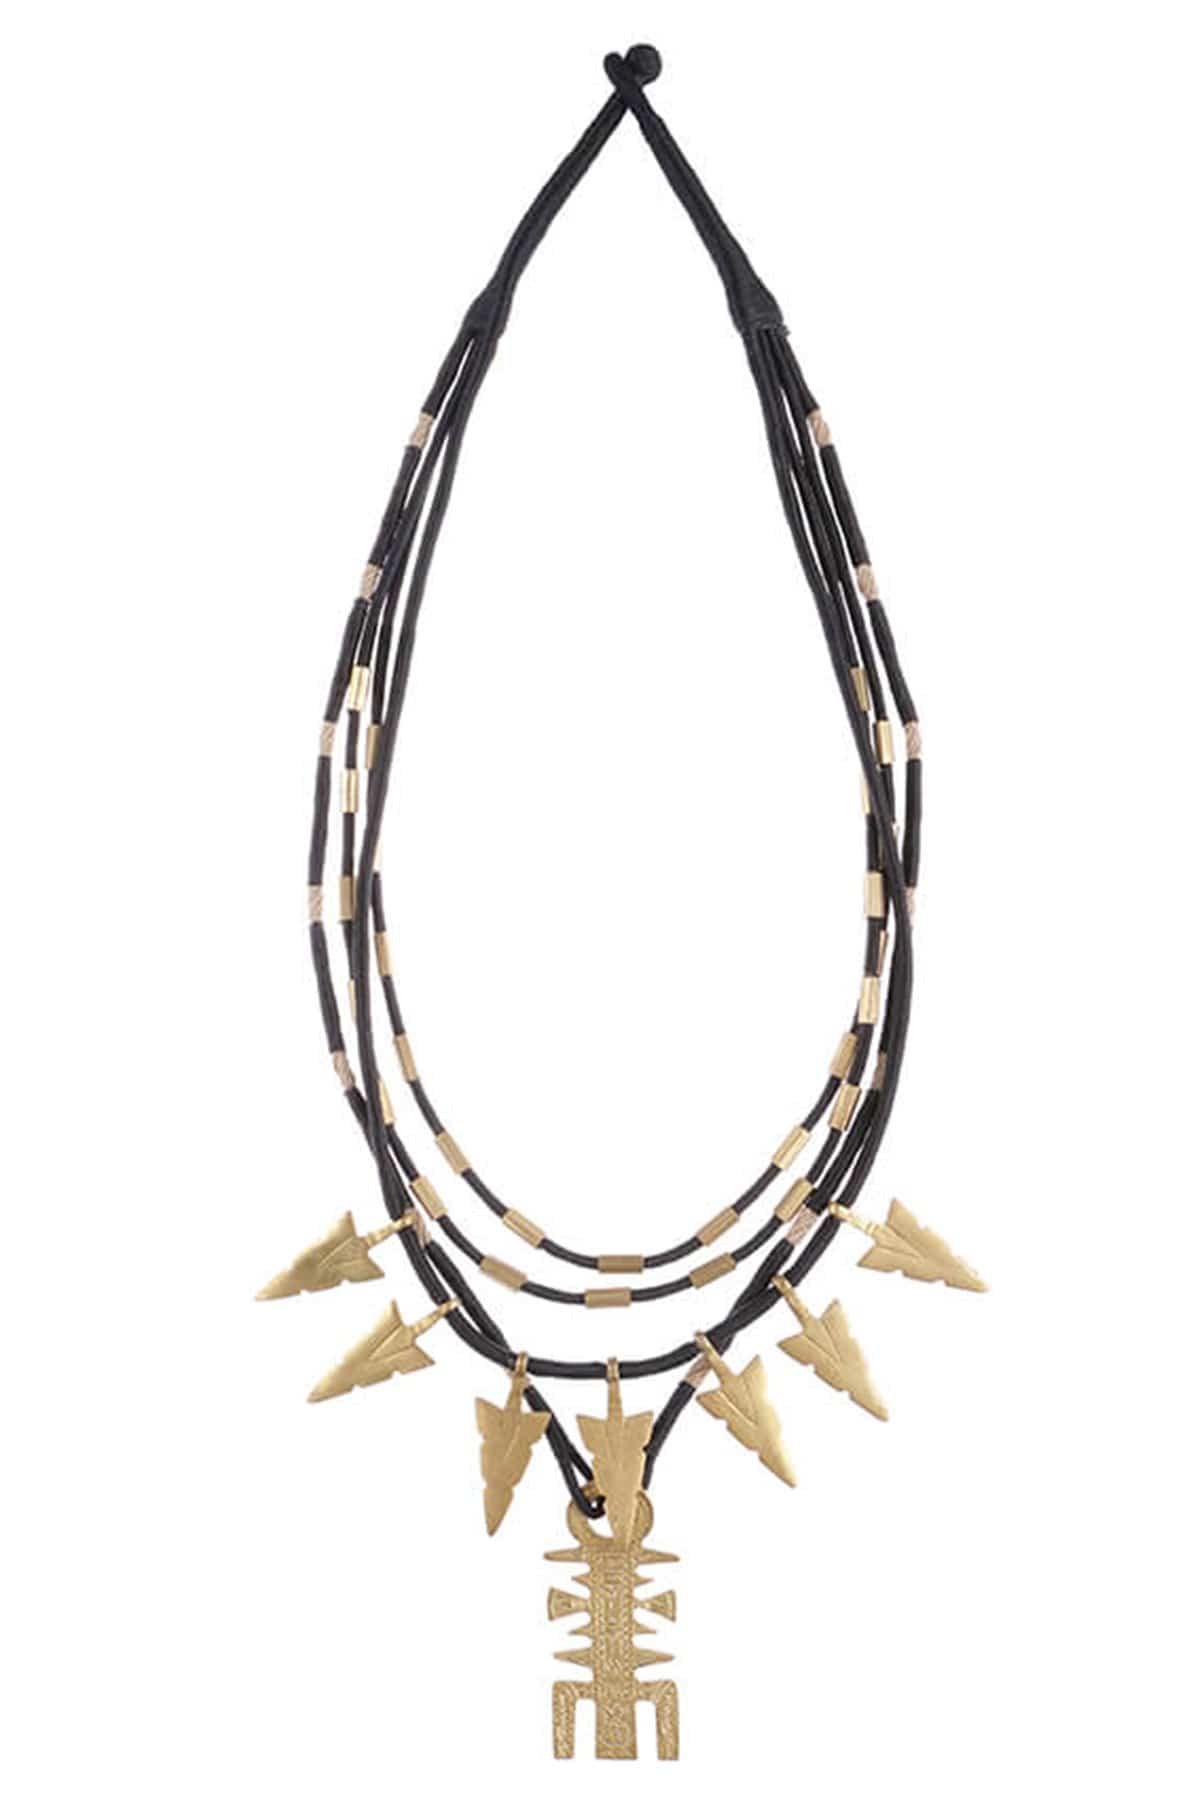 Mayabazaar Jewellery Arrowhead multi-strand necklace